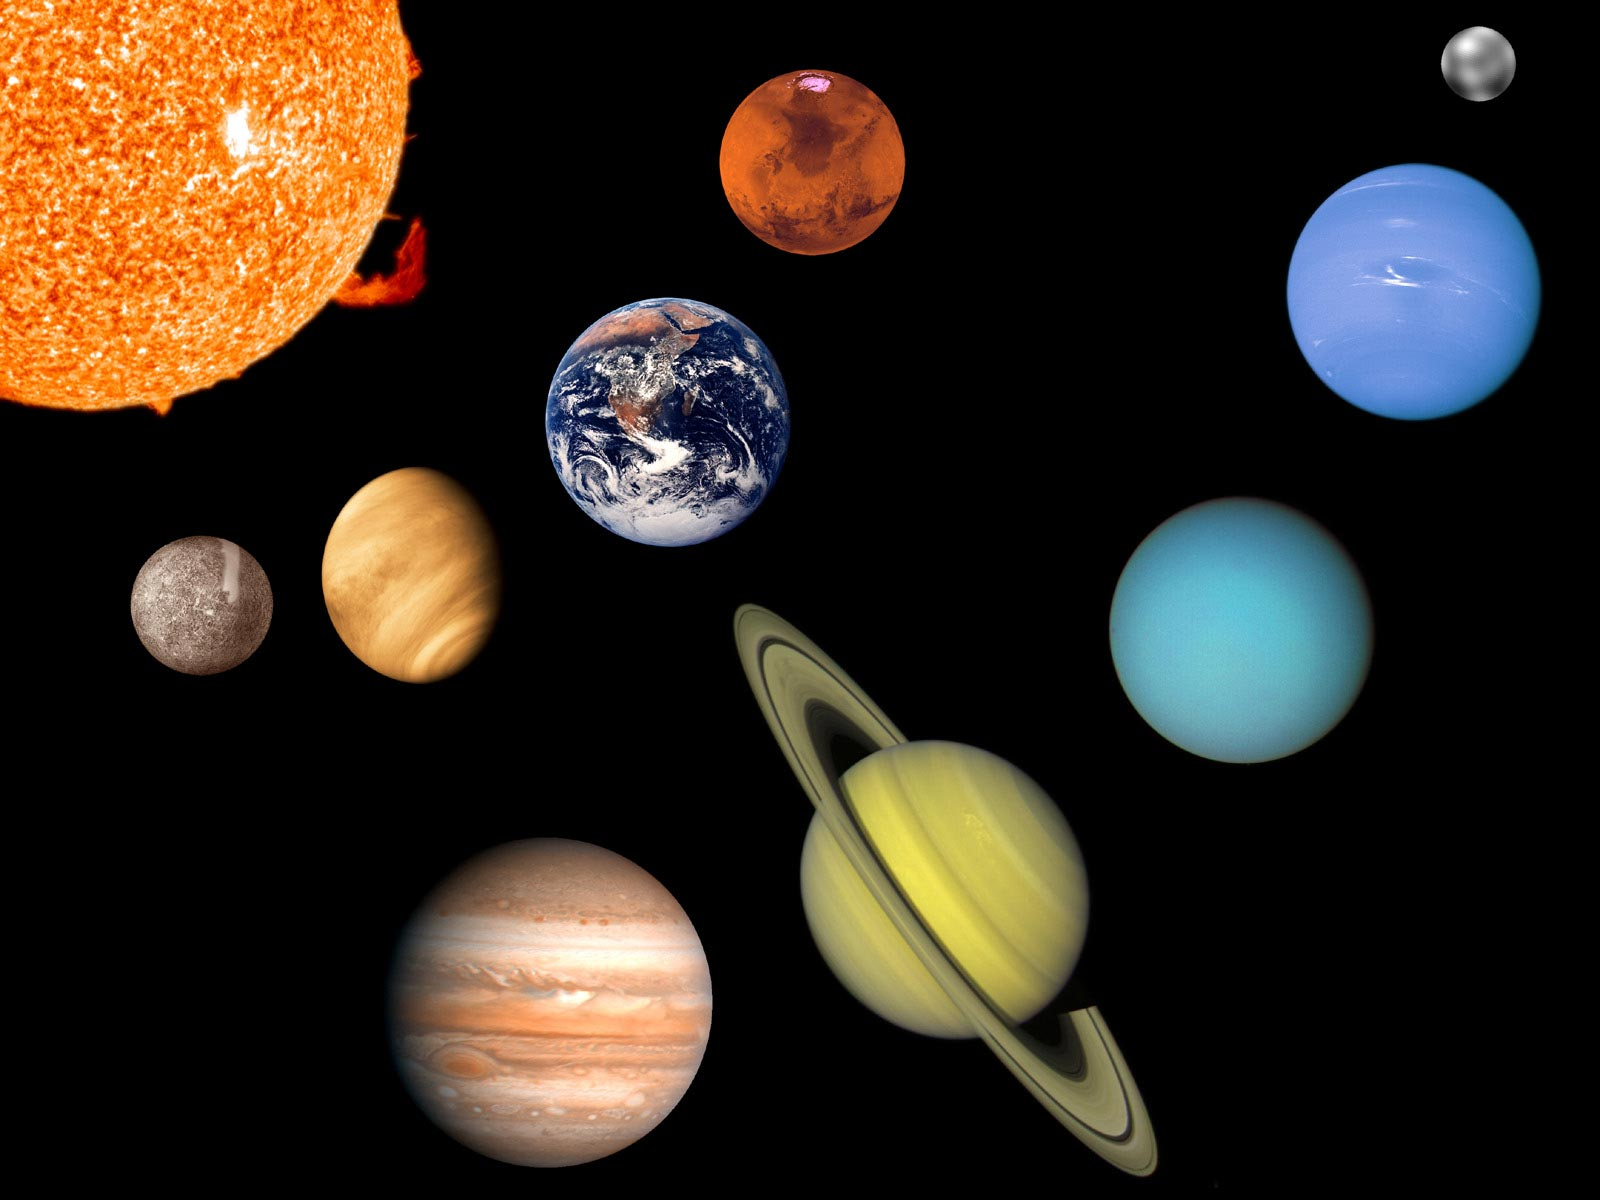 Free download clip art. Planets clipart real planet